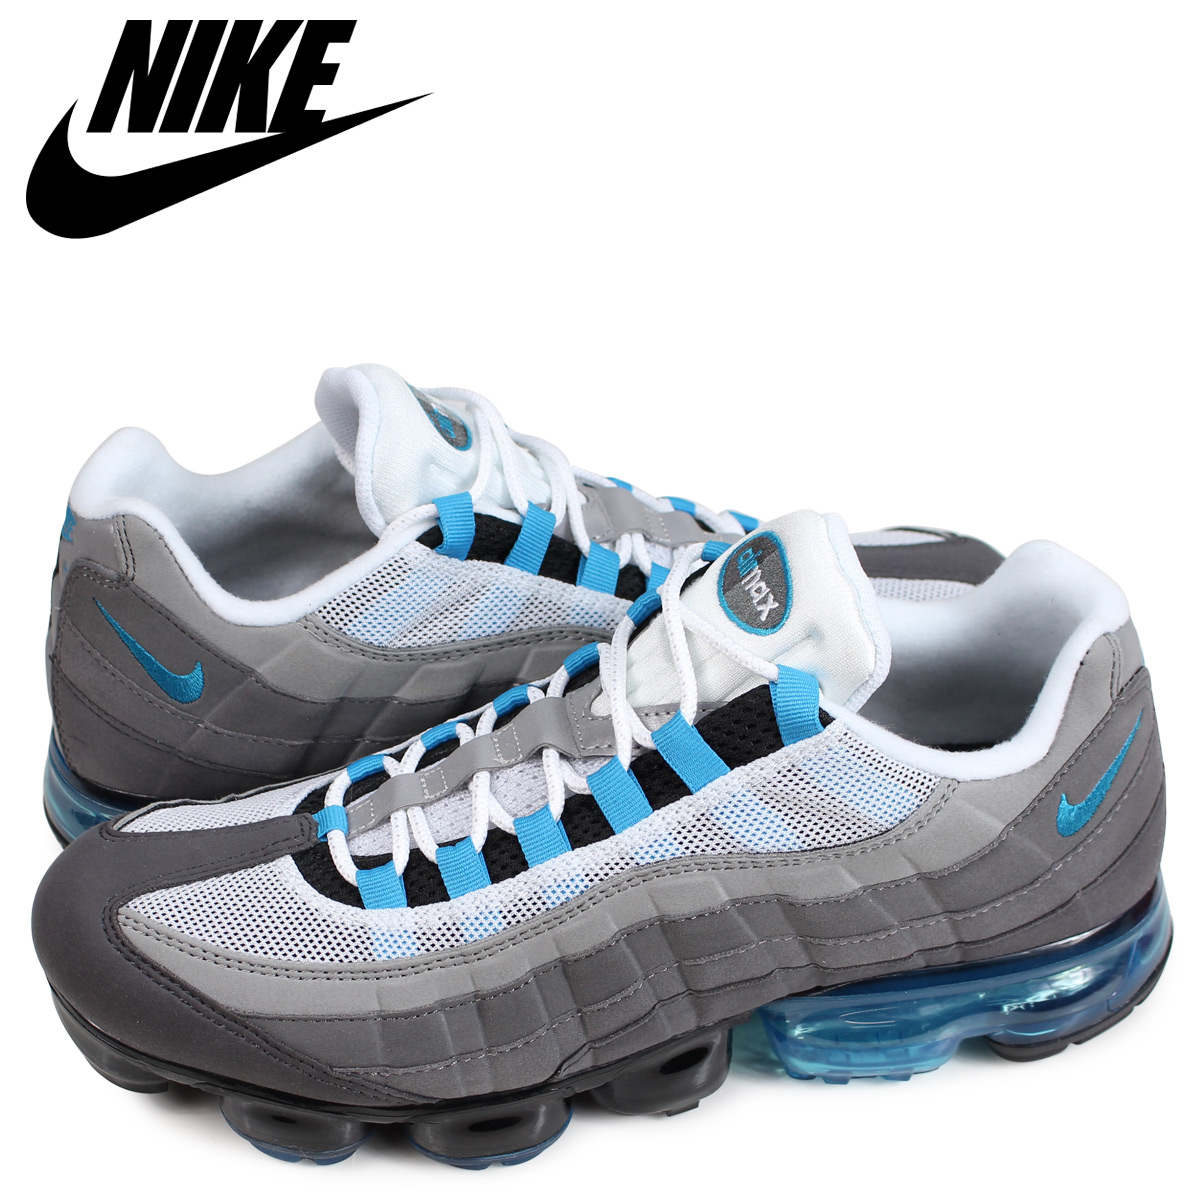 201f5bac14 Nike NIKE vapor max 95 sneakers men AIR VAPORMAX 95 black AJ7292-002 ...